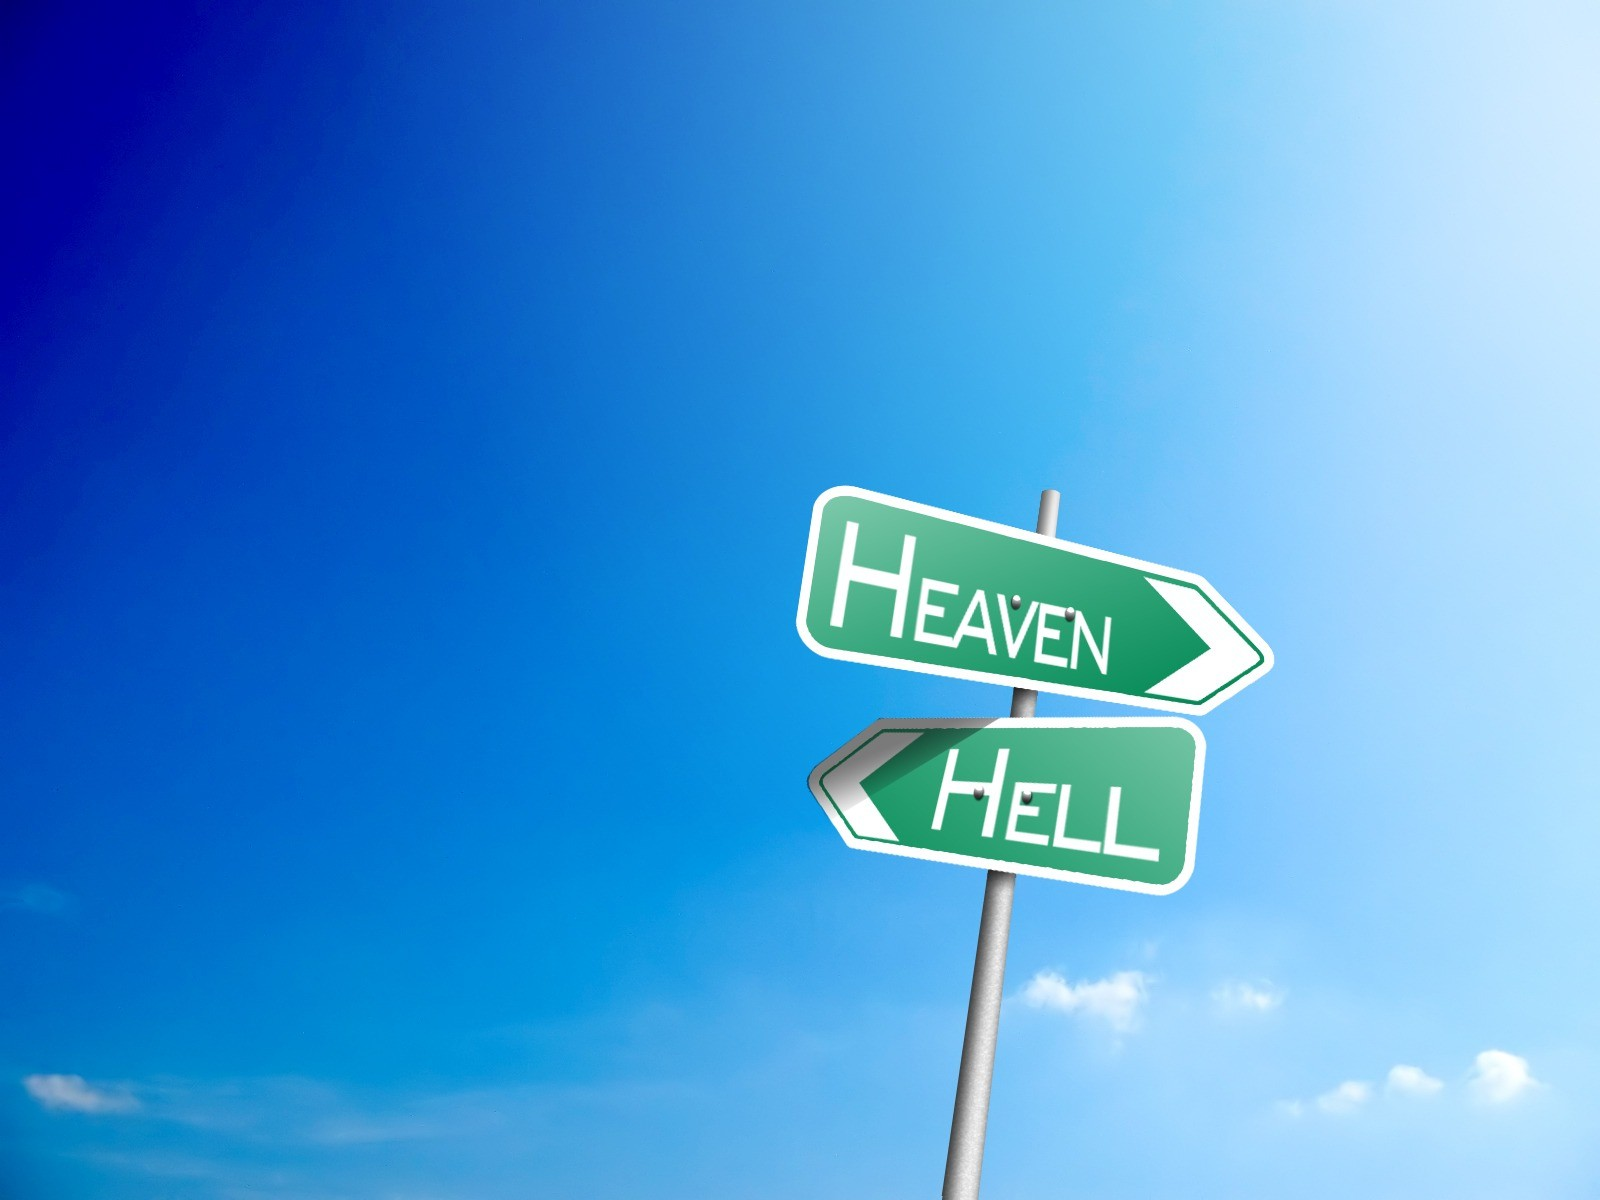 heaven hell signs abstract